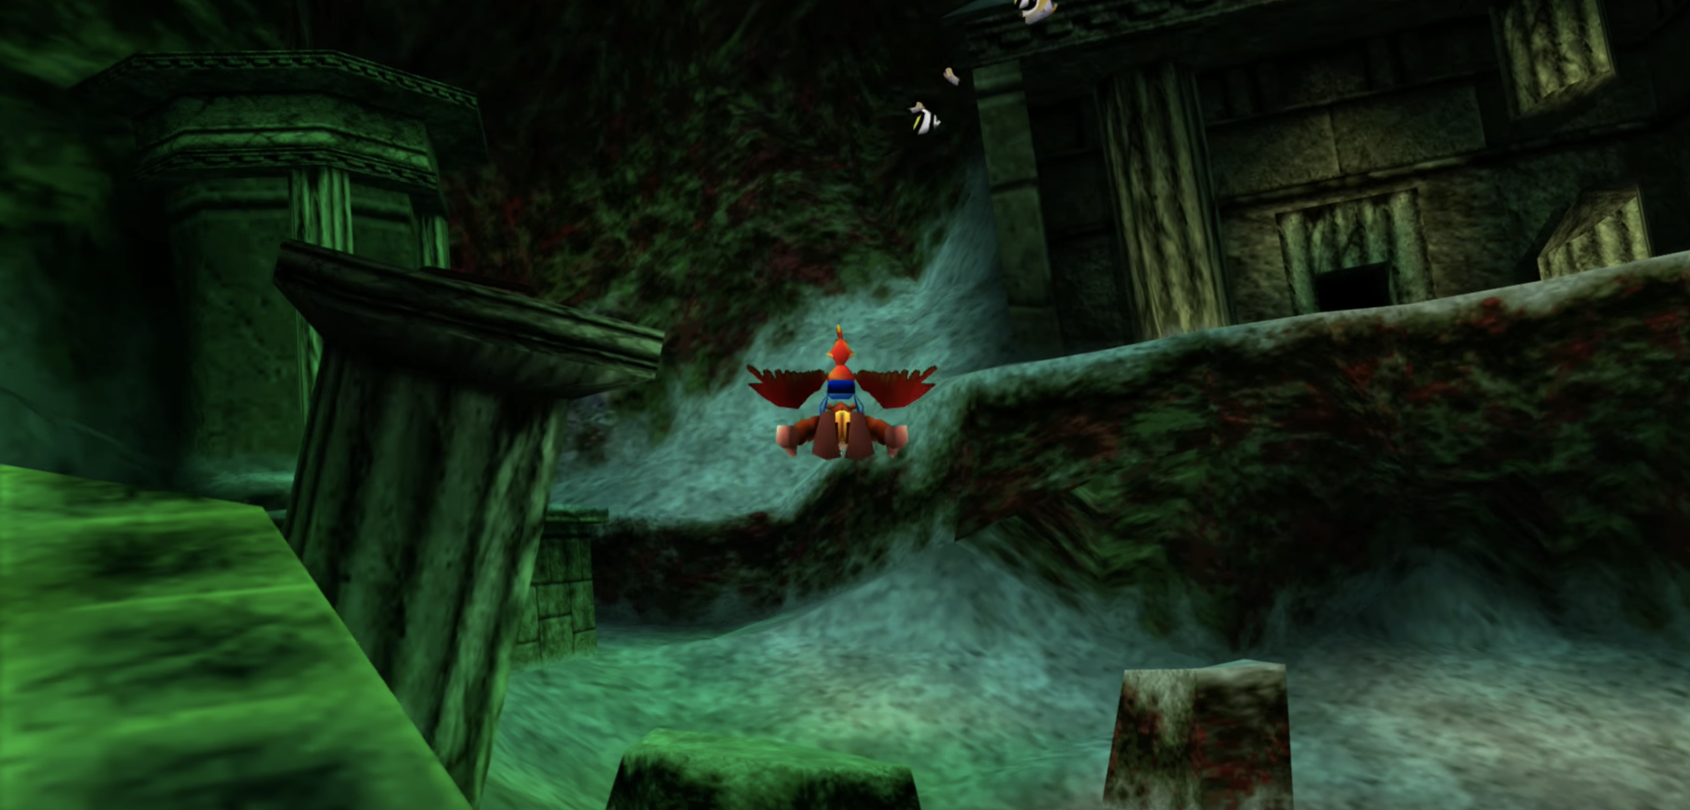 Banjo-Kazooie Is Now 20: Here Is How The Game Made History